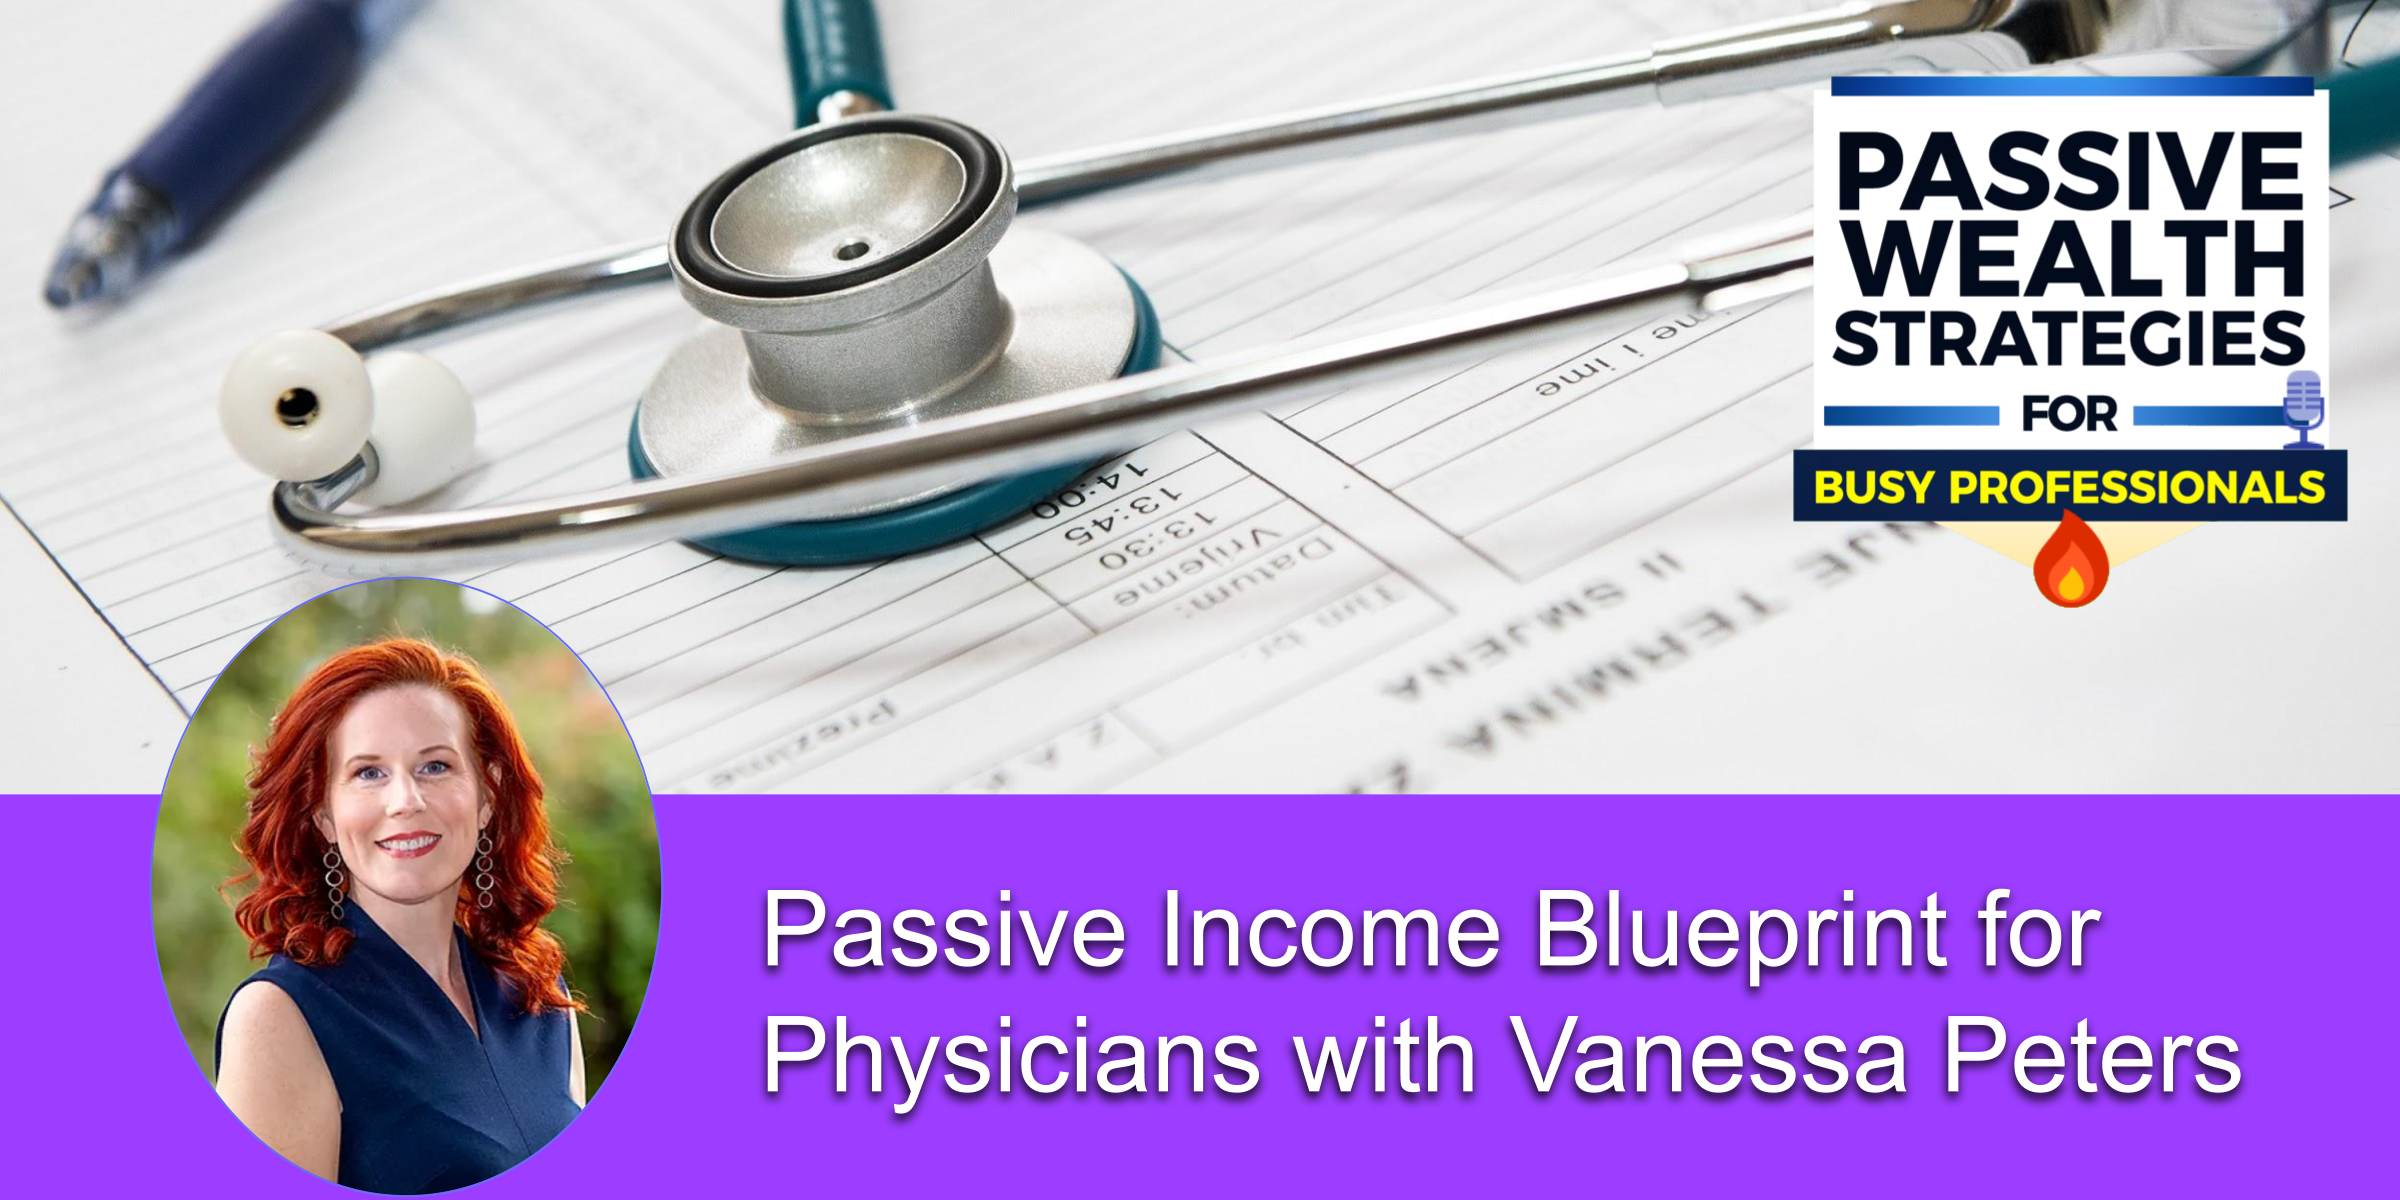 Passive Income Blueprint for Physicians with Vanessa Peters